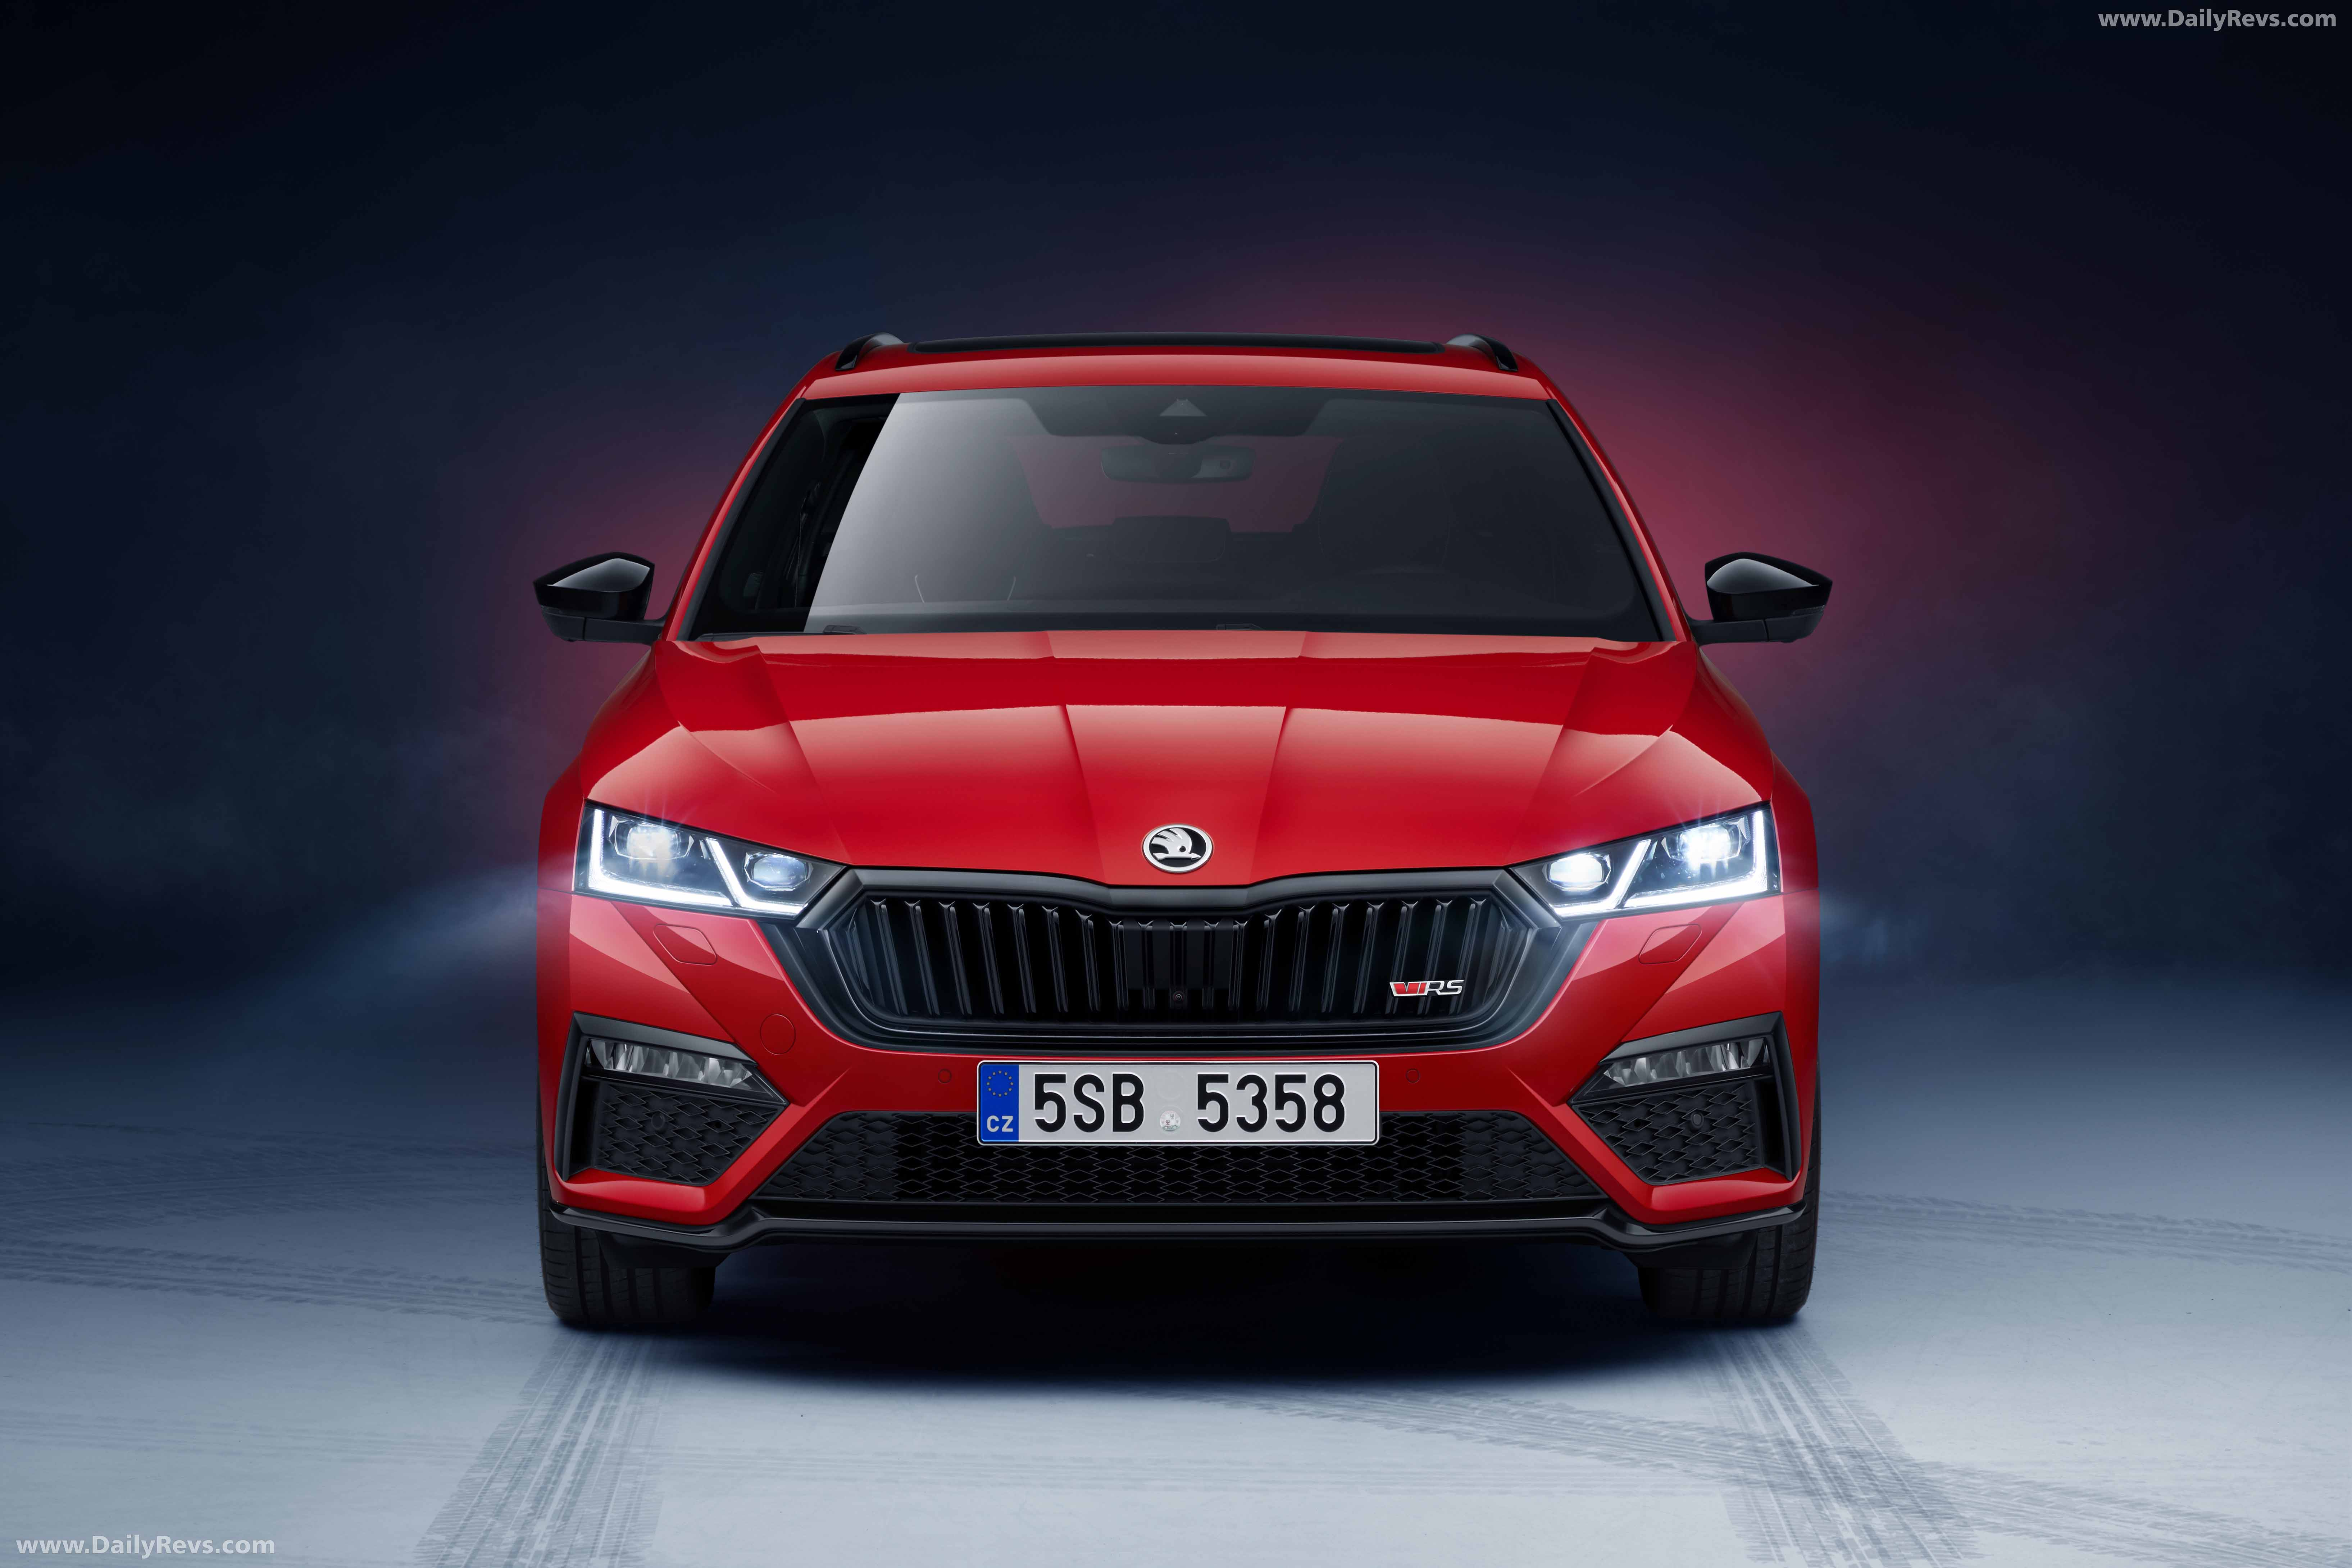 2020 Skoda Octavia Combi Rs Iv Hd Pictures Videos Specs Information Dailyrevs